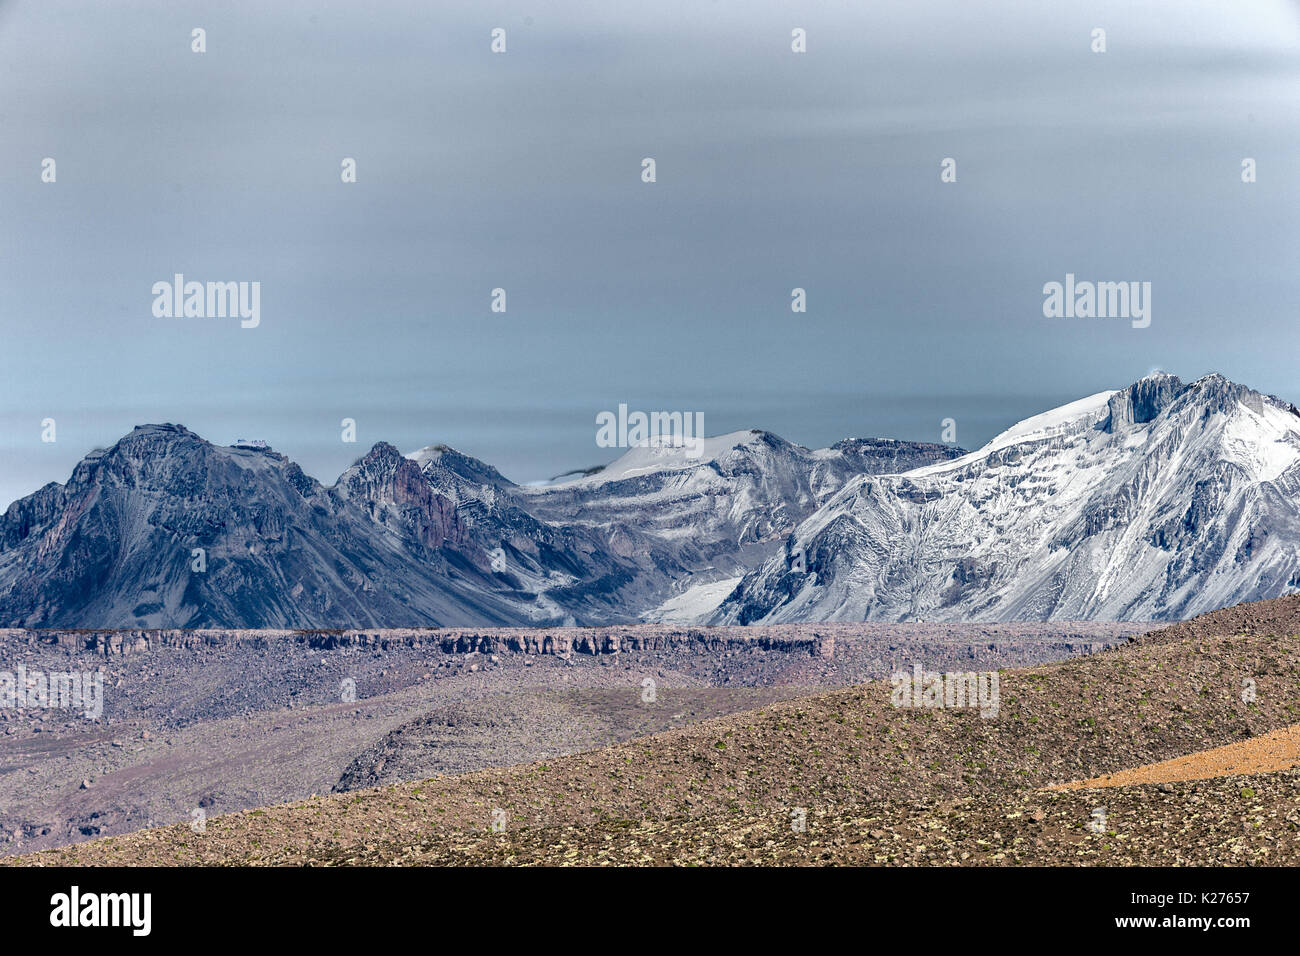 Southern Andes Peru - Stock Image